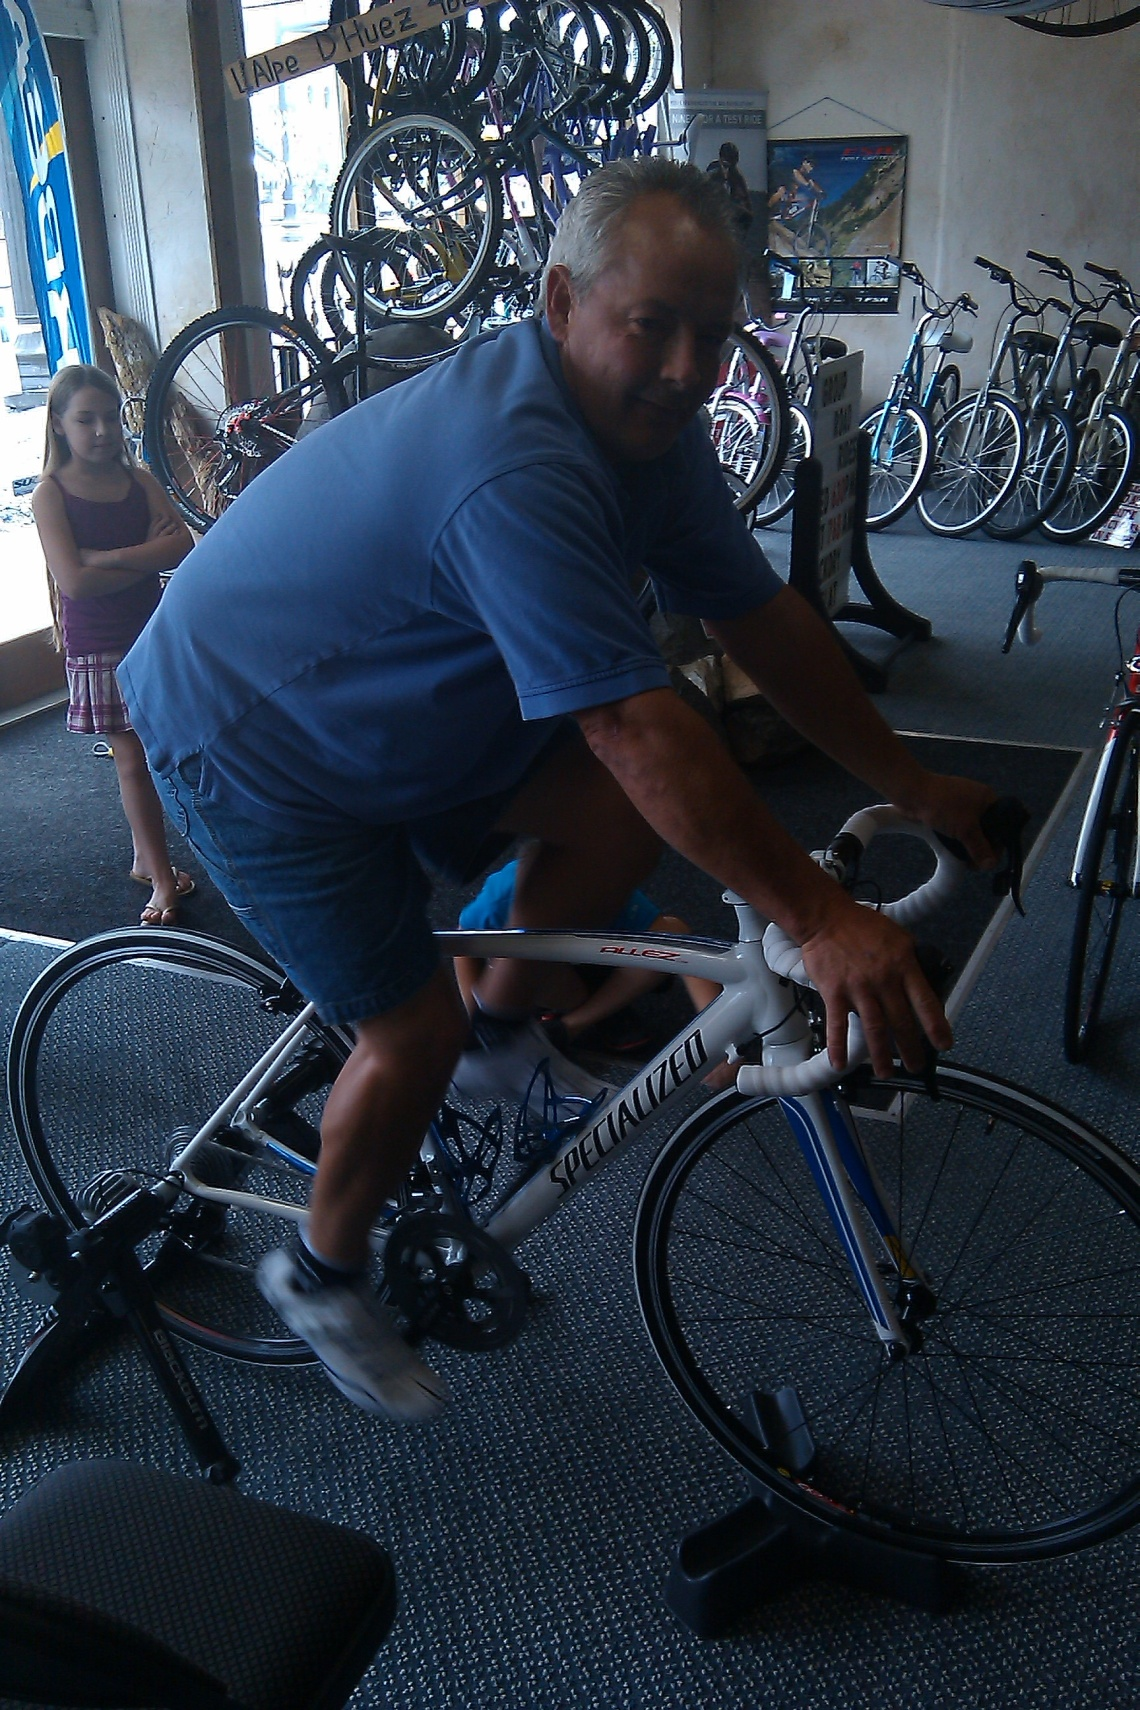 Tim and His 2011 Specialized Allez Comp